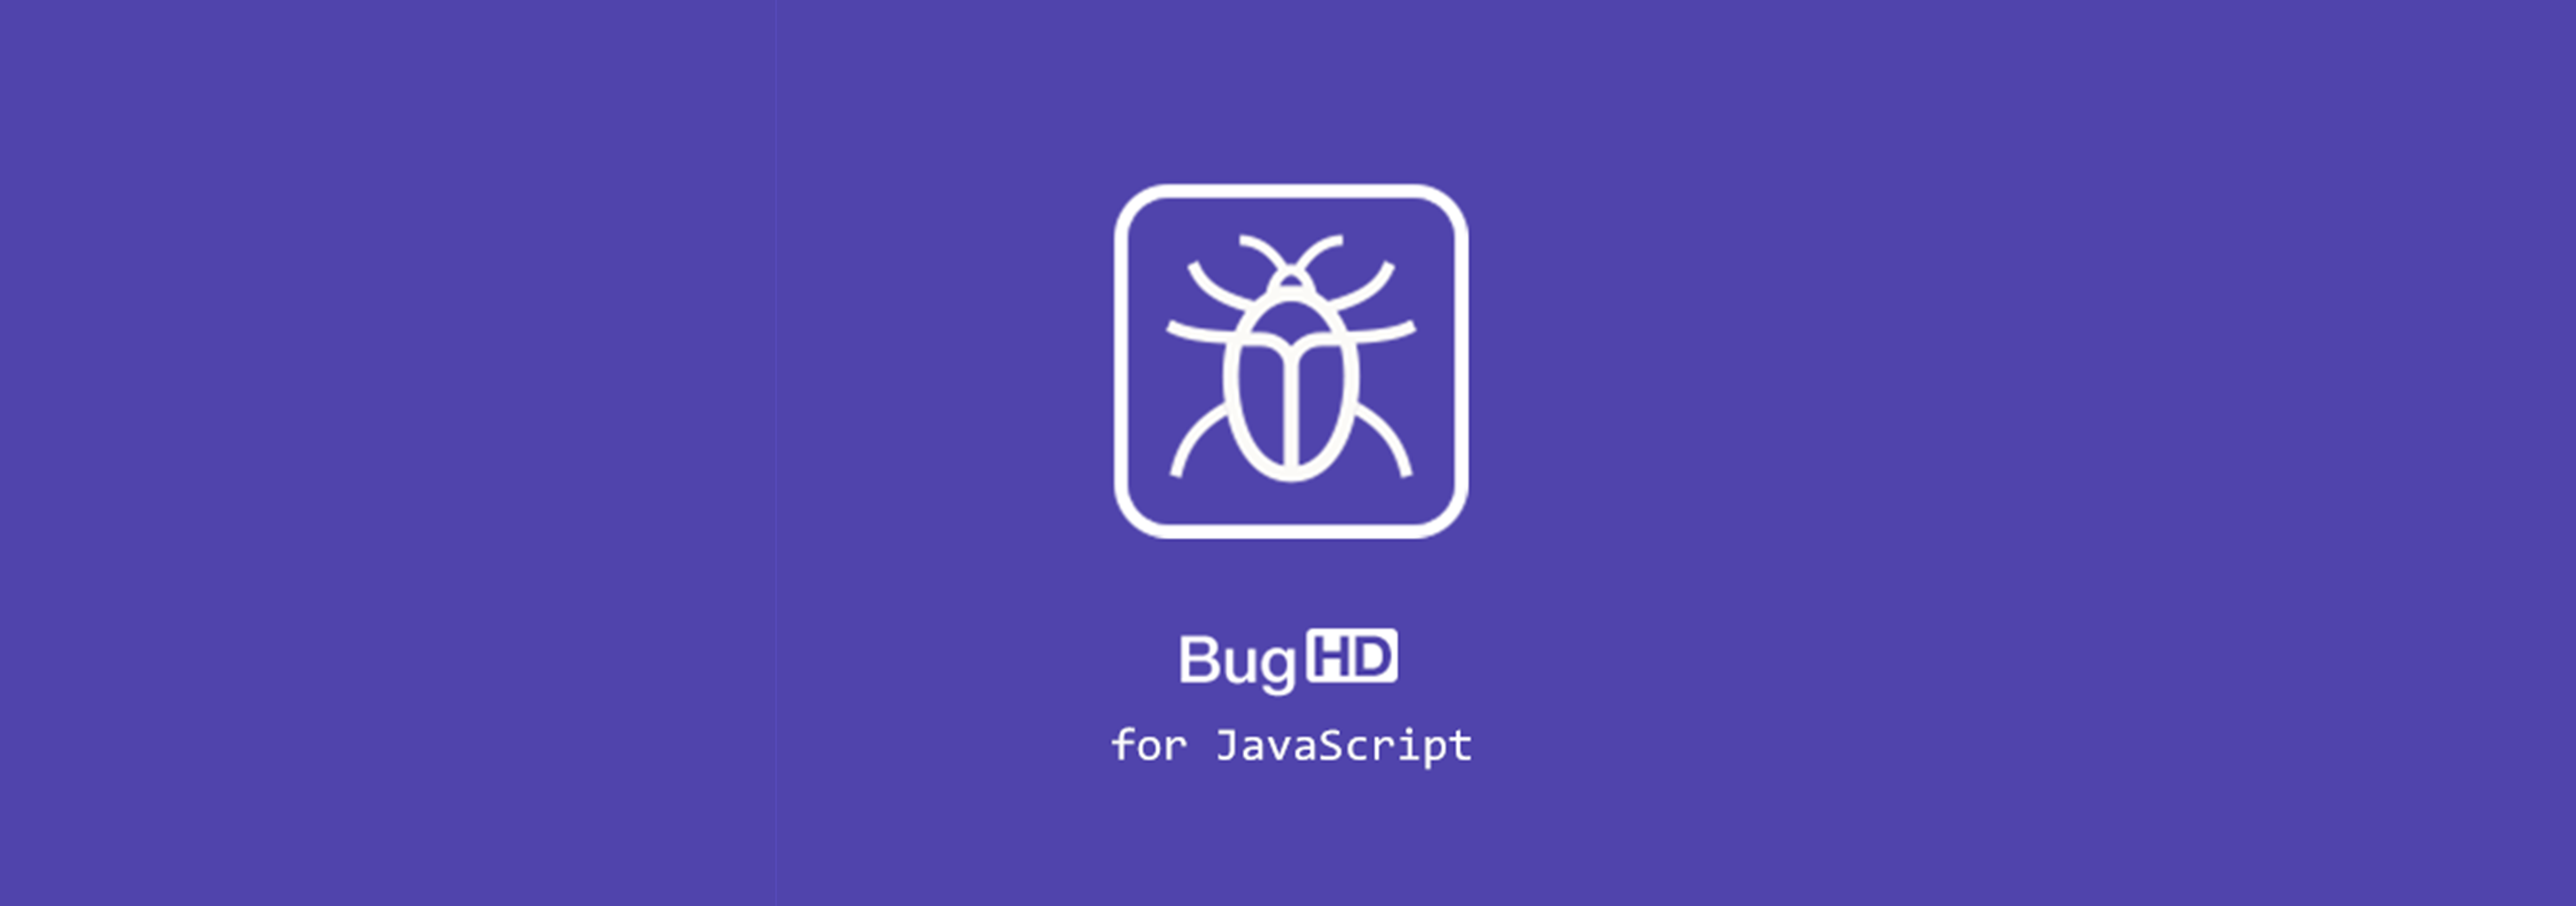 更新日志 - BugHD for JavaScript上线,轻松收集前端 Error